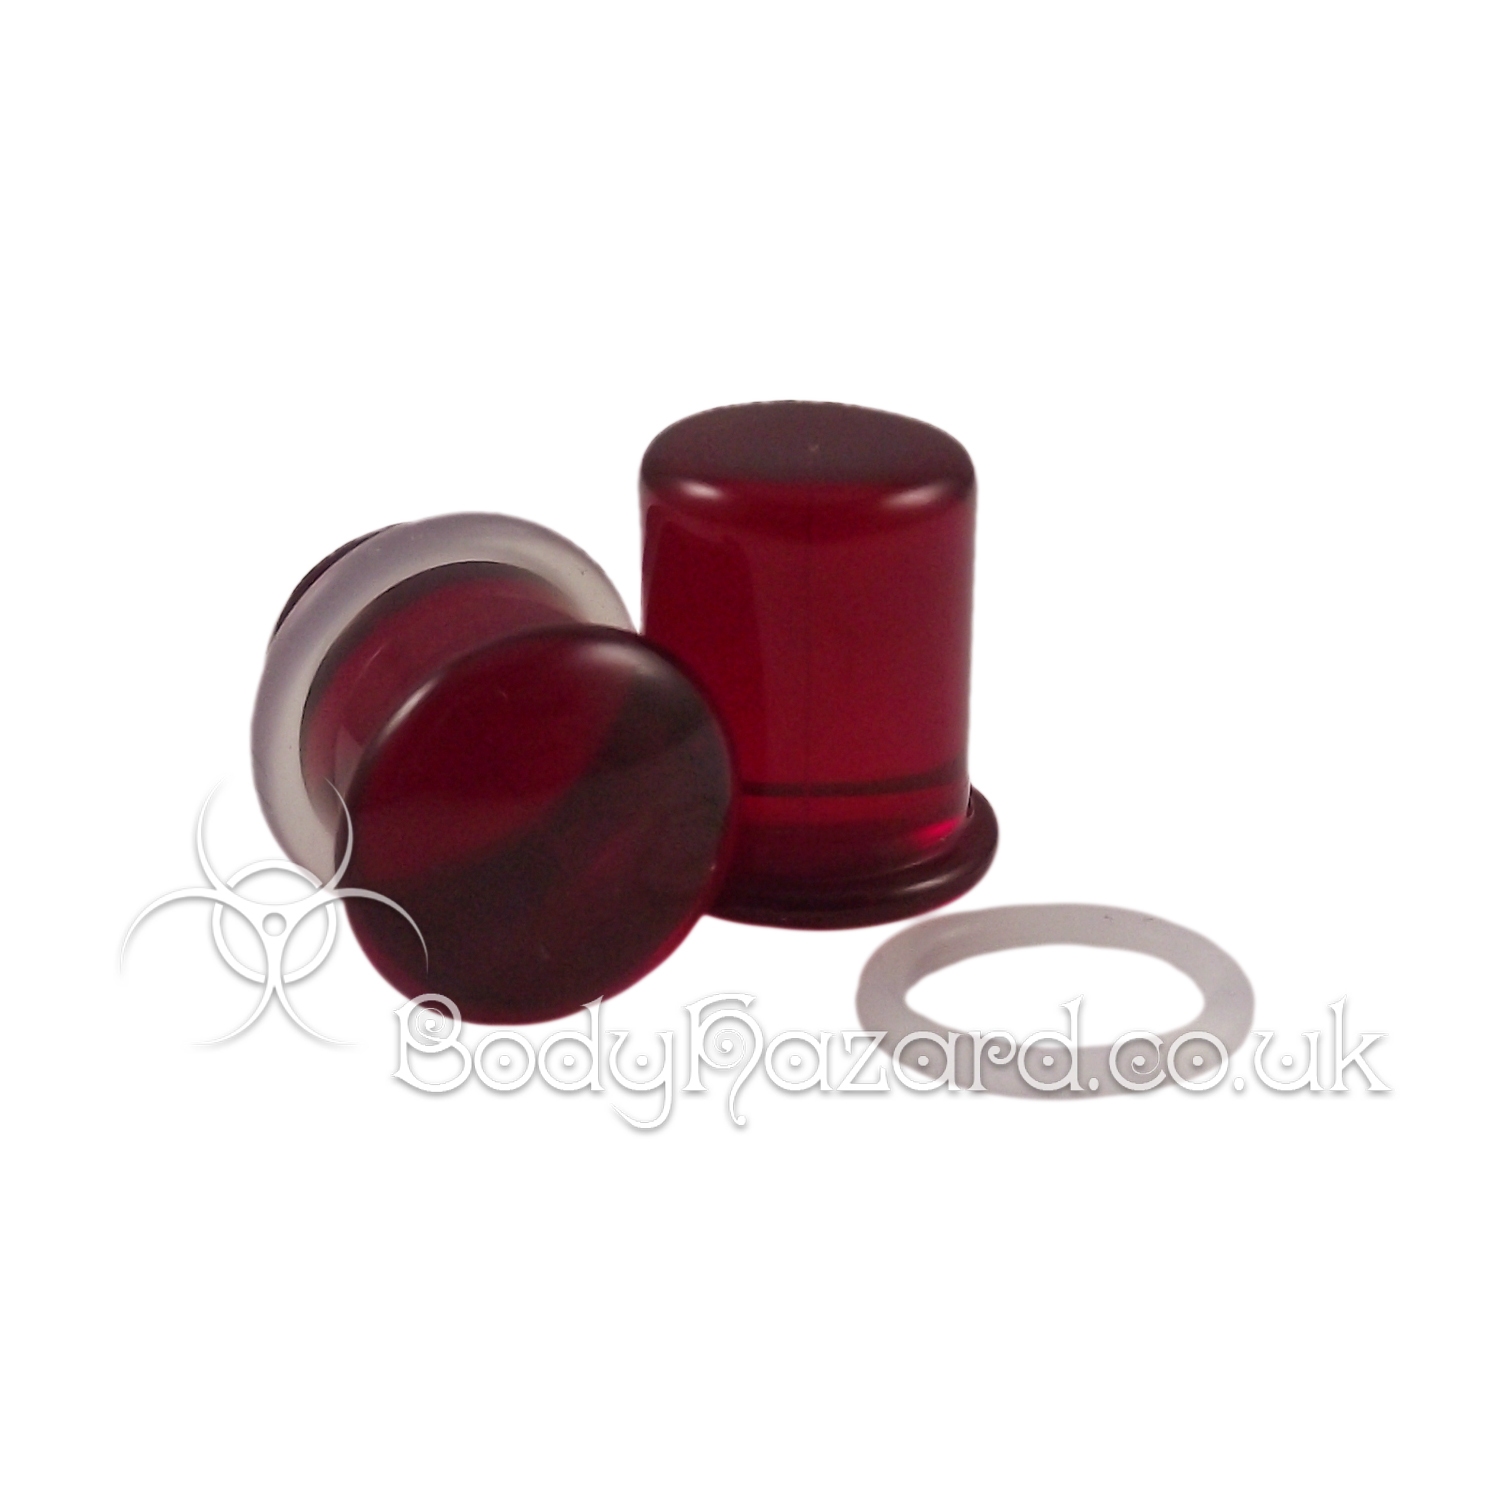 Ruby Red Glass Single Flared Plugs by Gorilla Glass